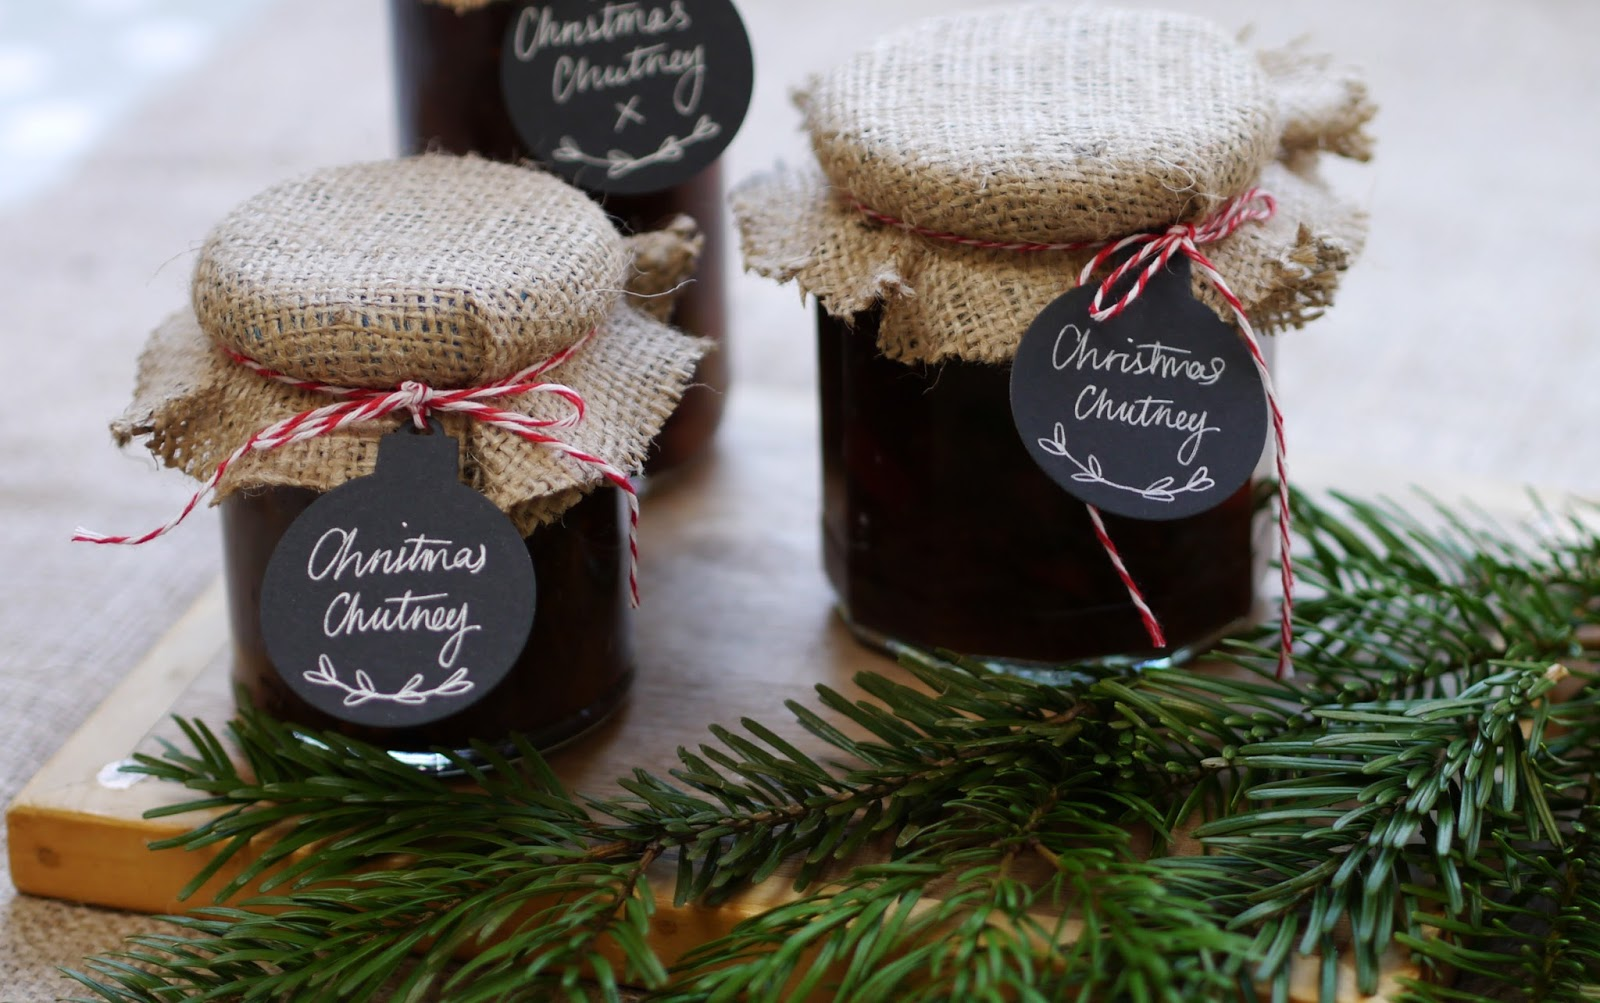 Homemade Christmas Spiced Onion Tomato Chutney Gift in a Jar Packaging